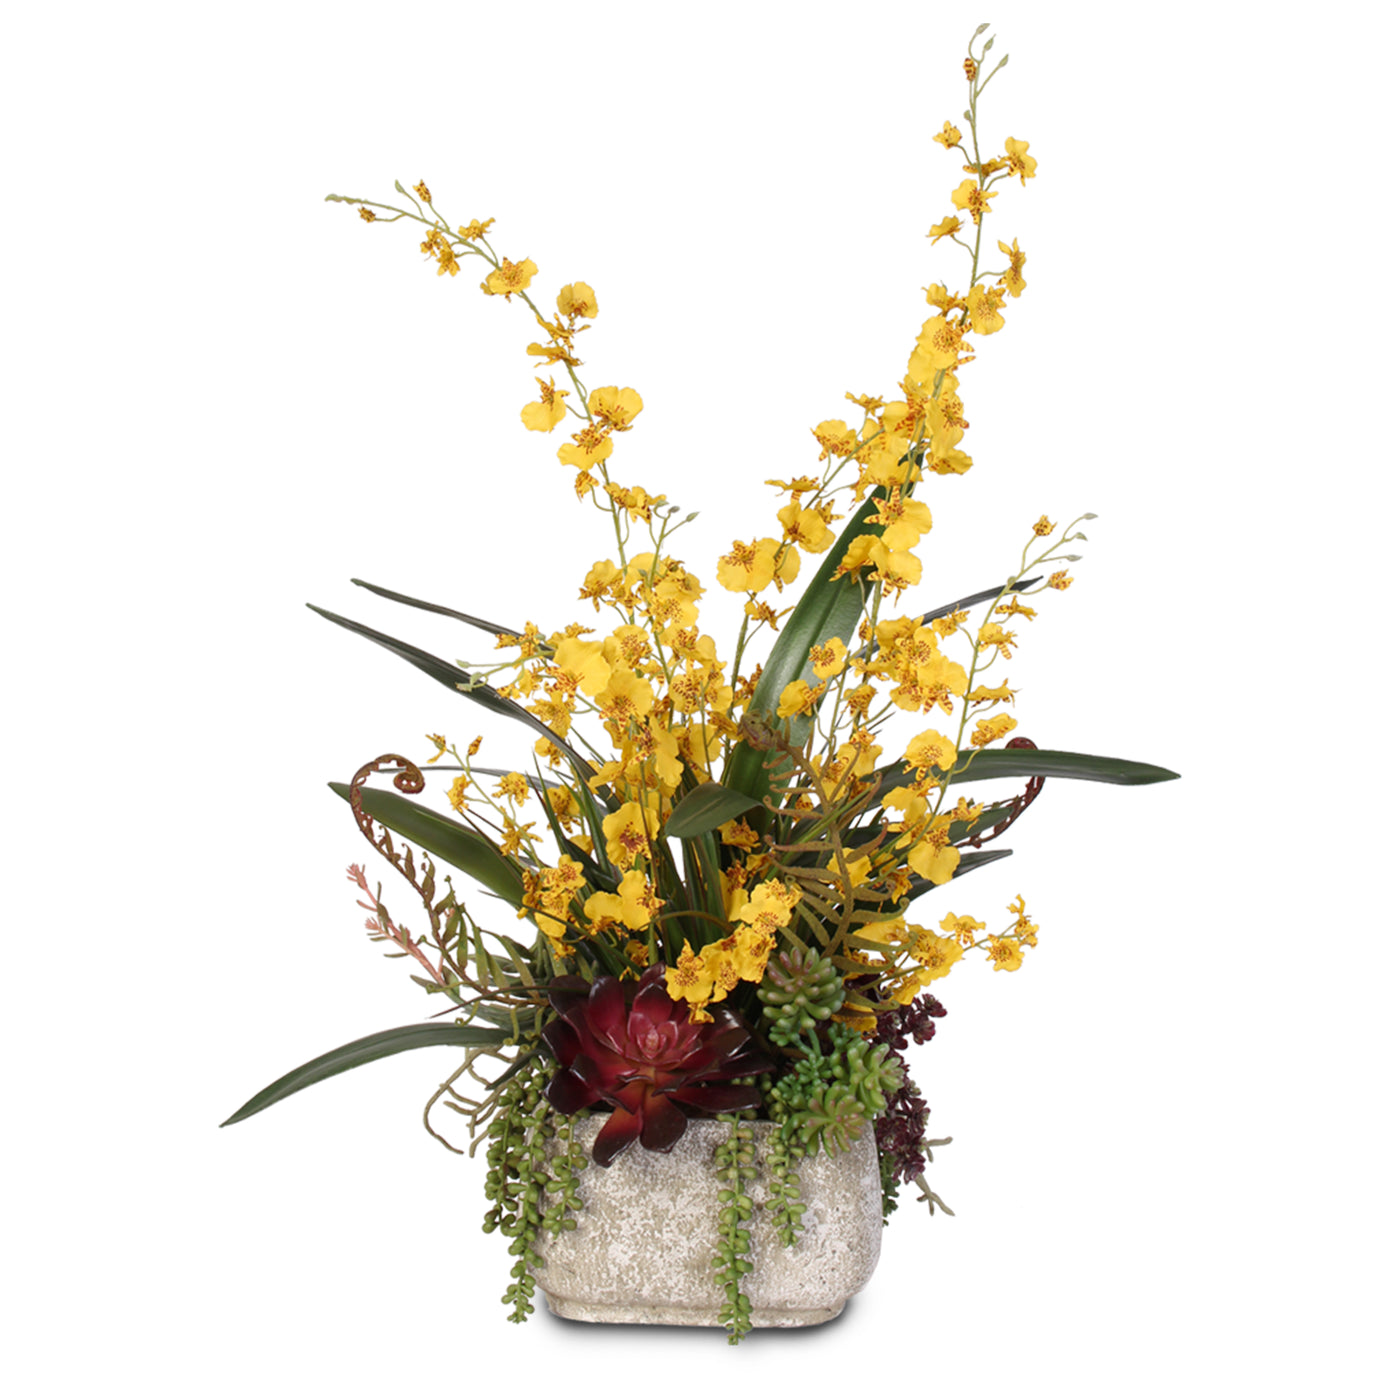 Balancing Yellow Silk Oncidium Orchids With Succulents In Concrete Pot Jenny Silks